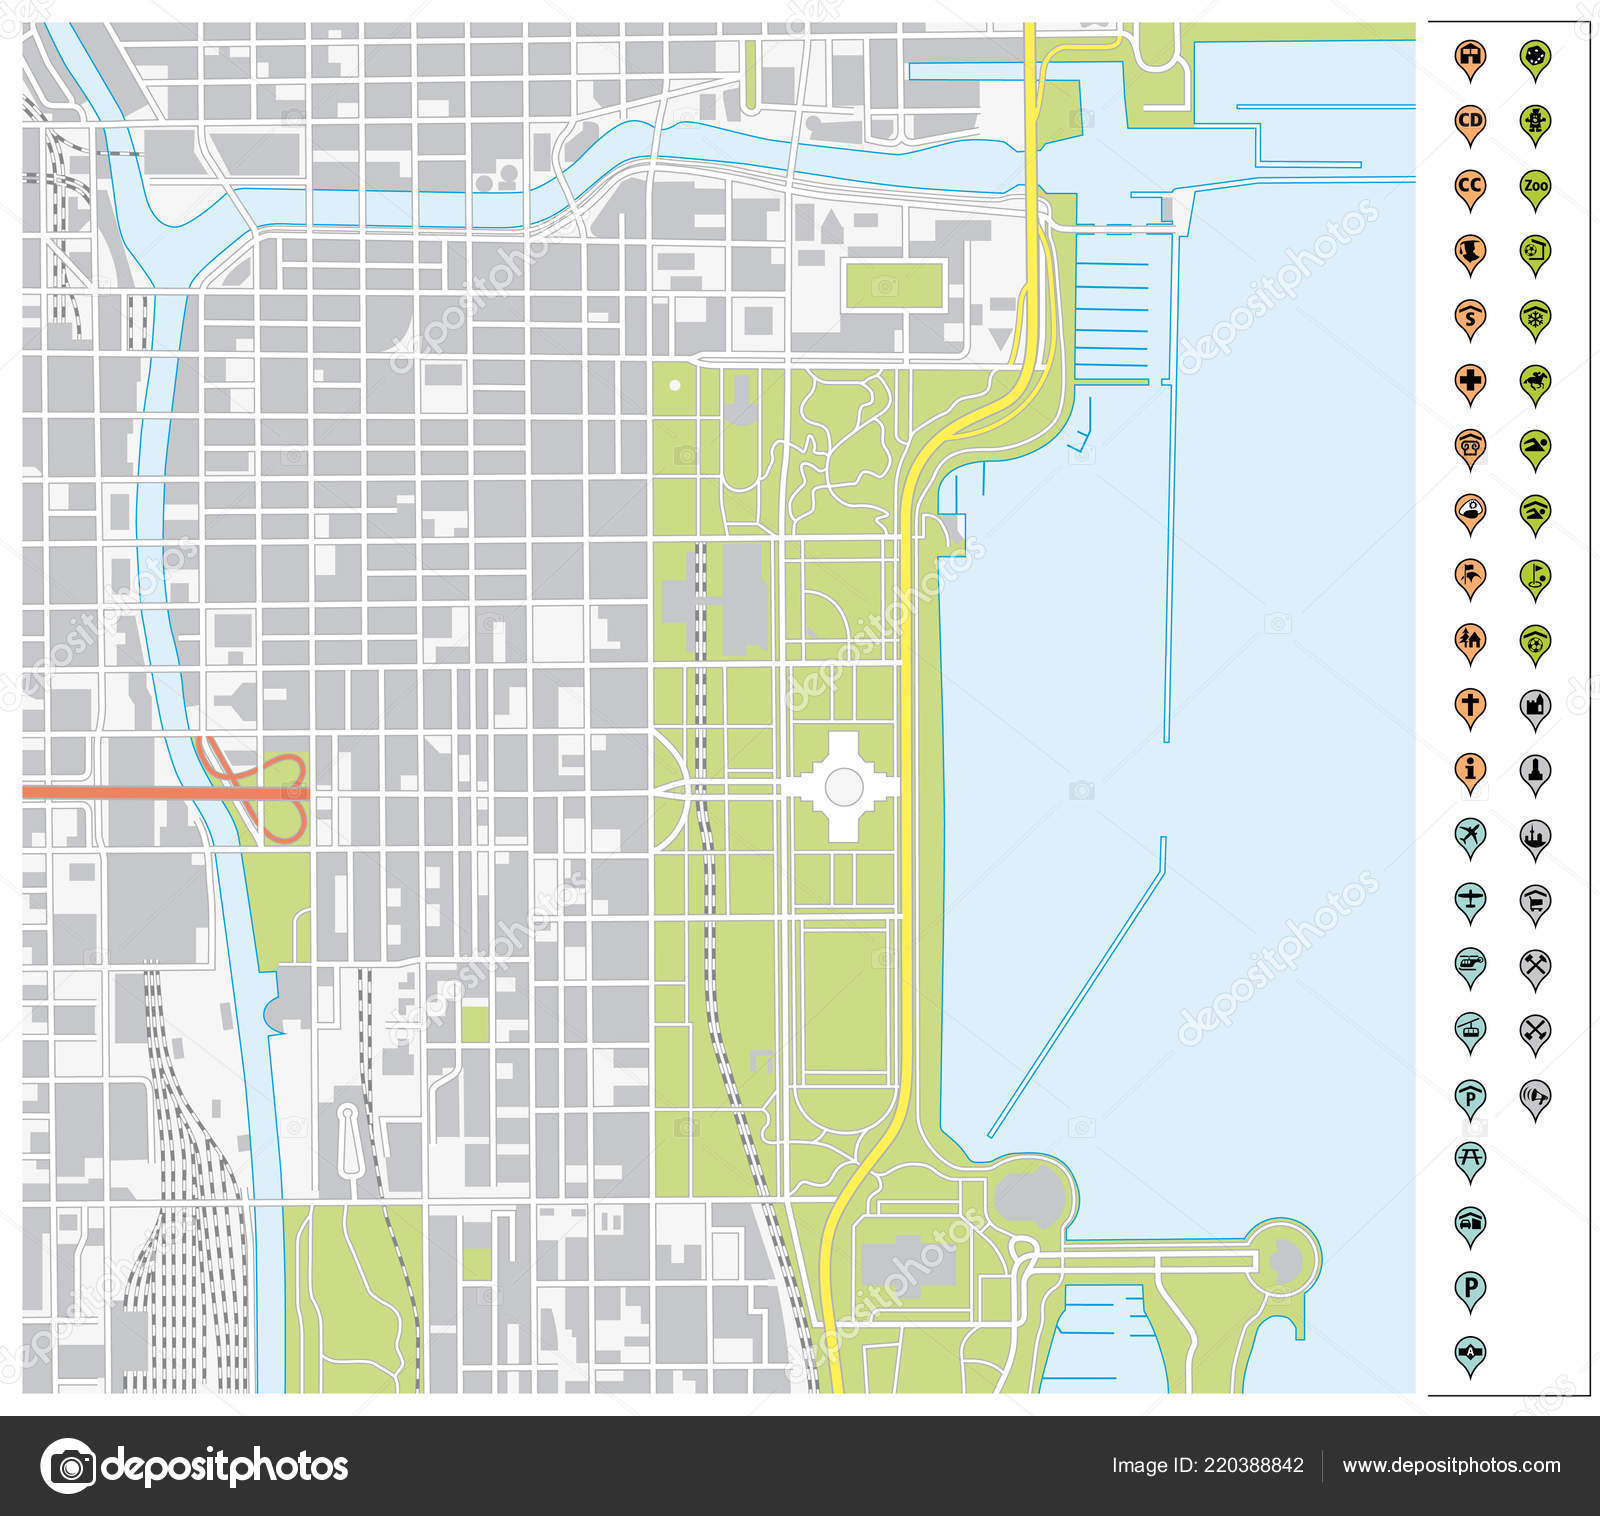 Vector Street Map Downtown Chicago Pin Pointers Infrastructure Icons on